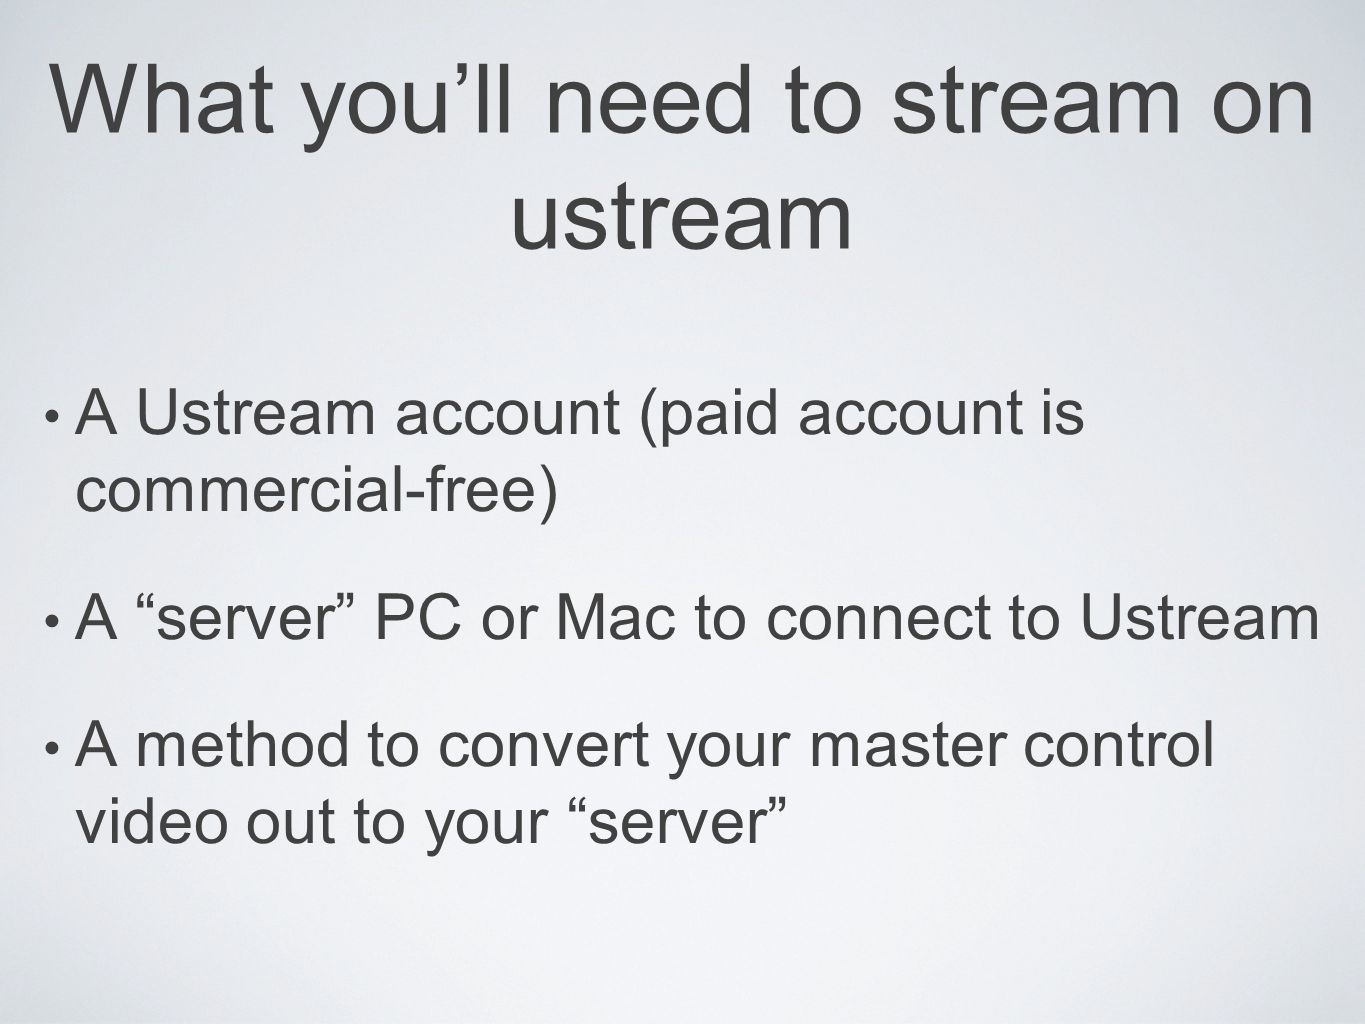 What youll need to stream on ustream A Ustream account (paid account is commercial-free) A server PC or Mac to connect to Ustream A method to convert